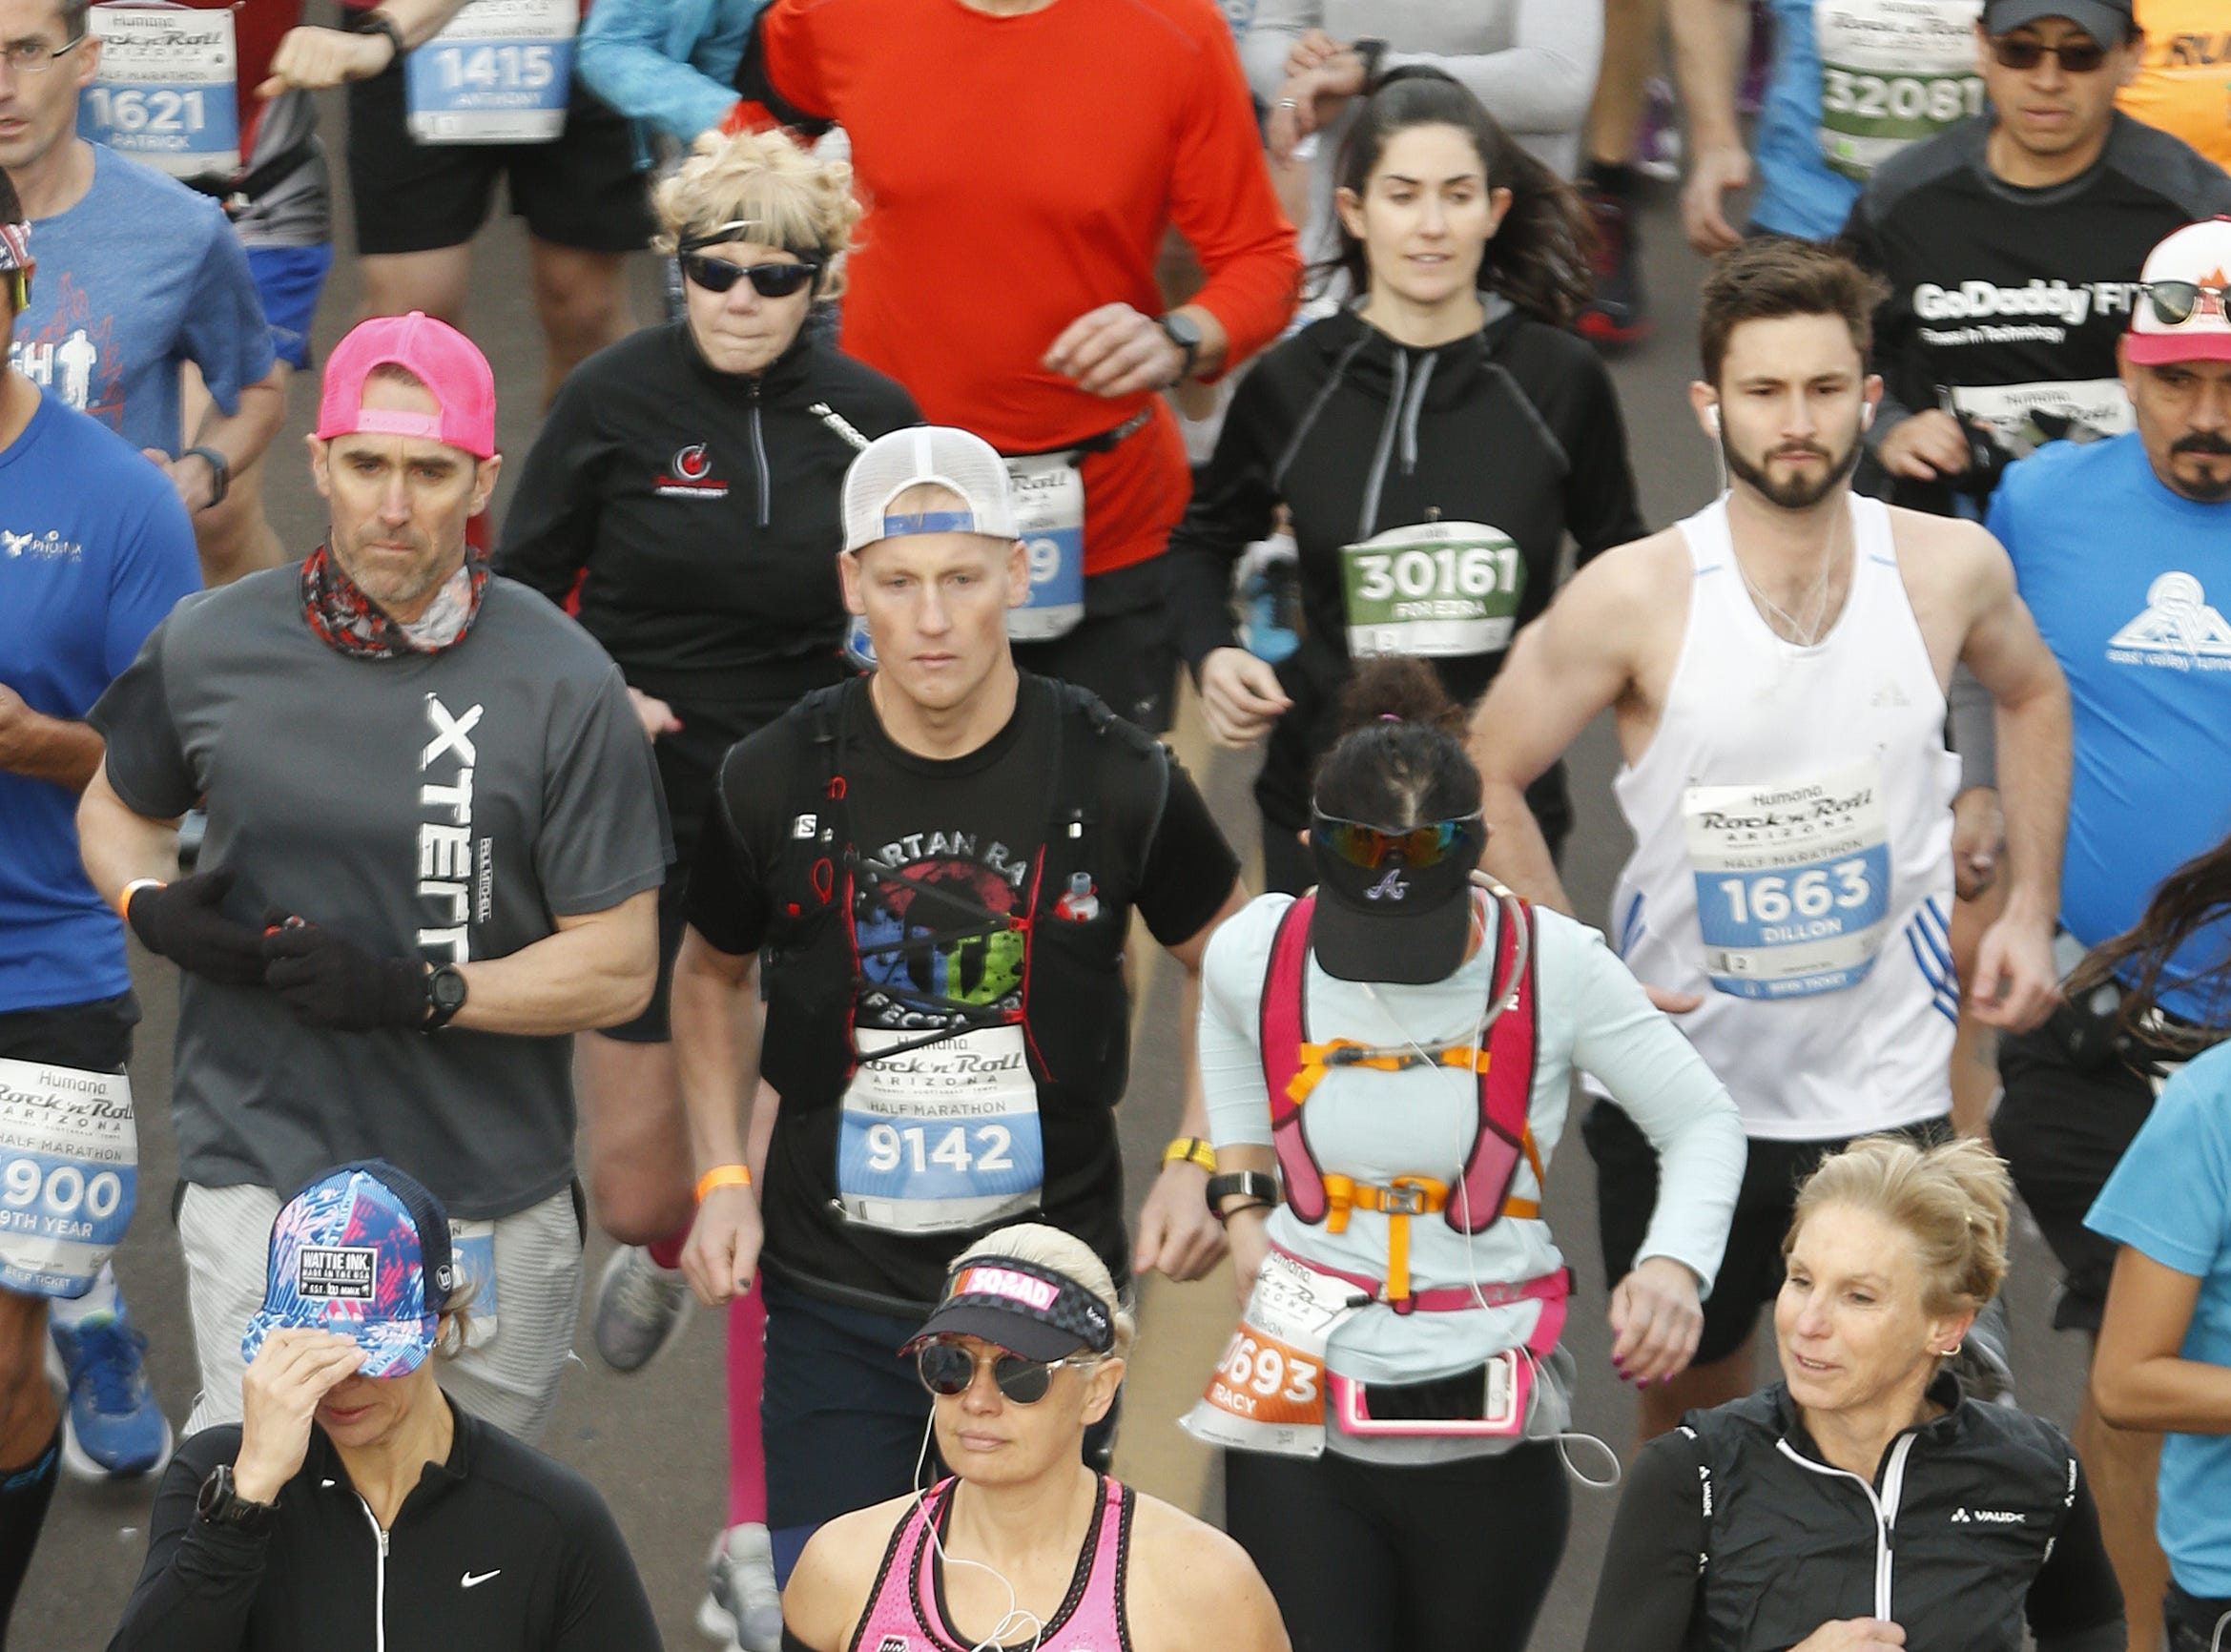 Sen. Kyrsten Sinema (in pink) takes off with others on their way during the Rock 'N' Roll half-marathon in Tempe on Jan. 20, 2019.